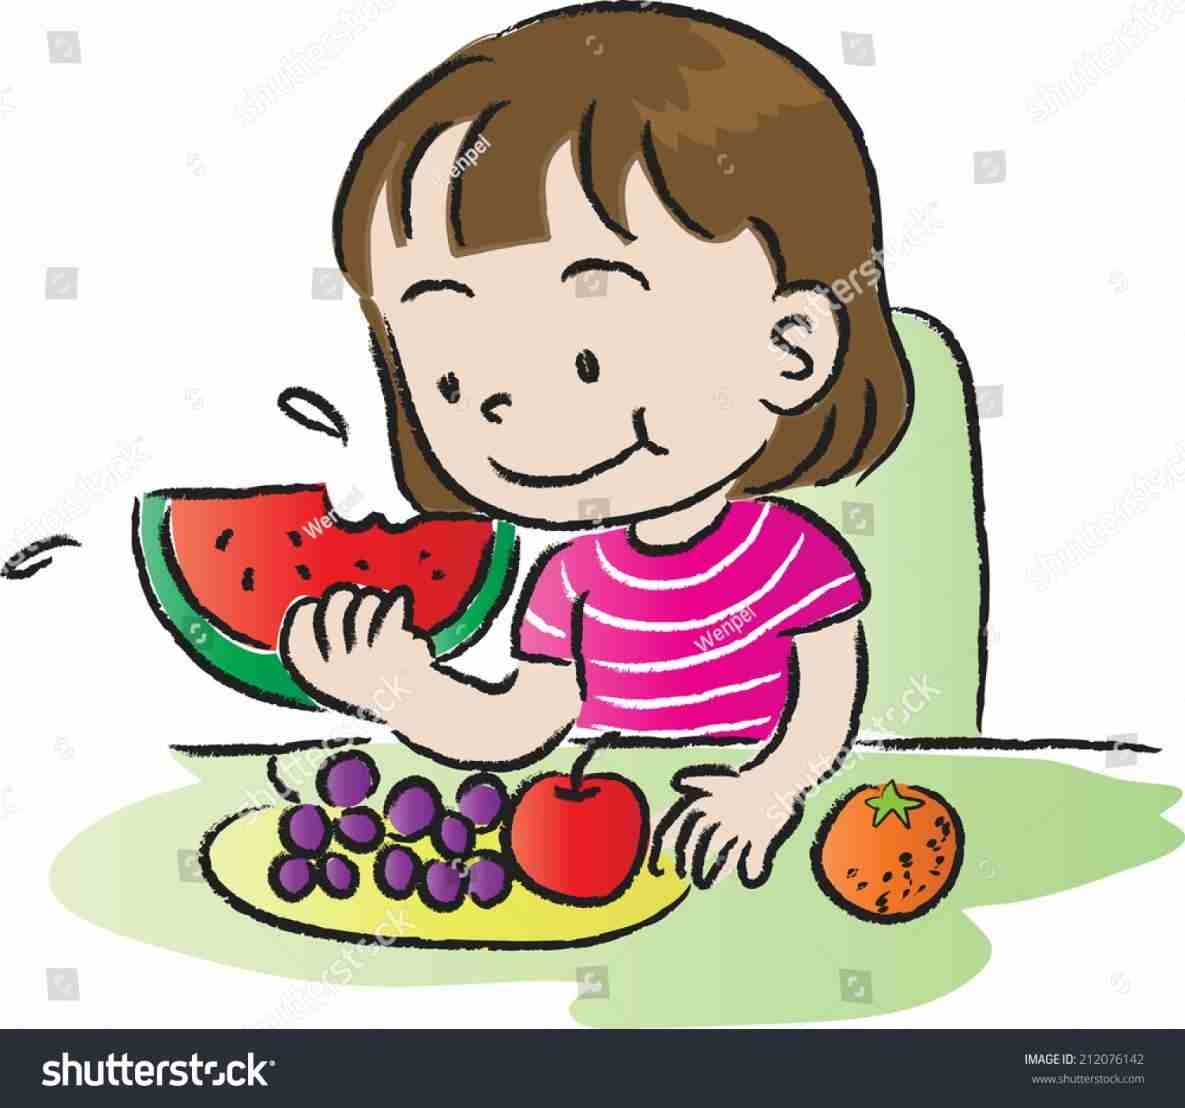 Eating fruits and vegetables clipart black and white clip art library Eating fruits and vegetables stationrhclipartstationcom eating ... clip art library